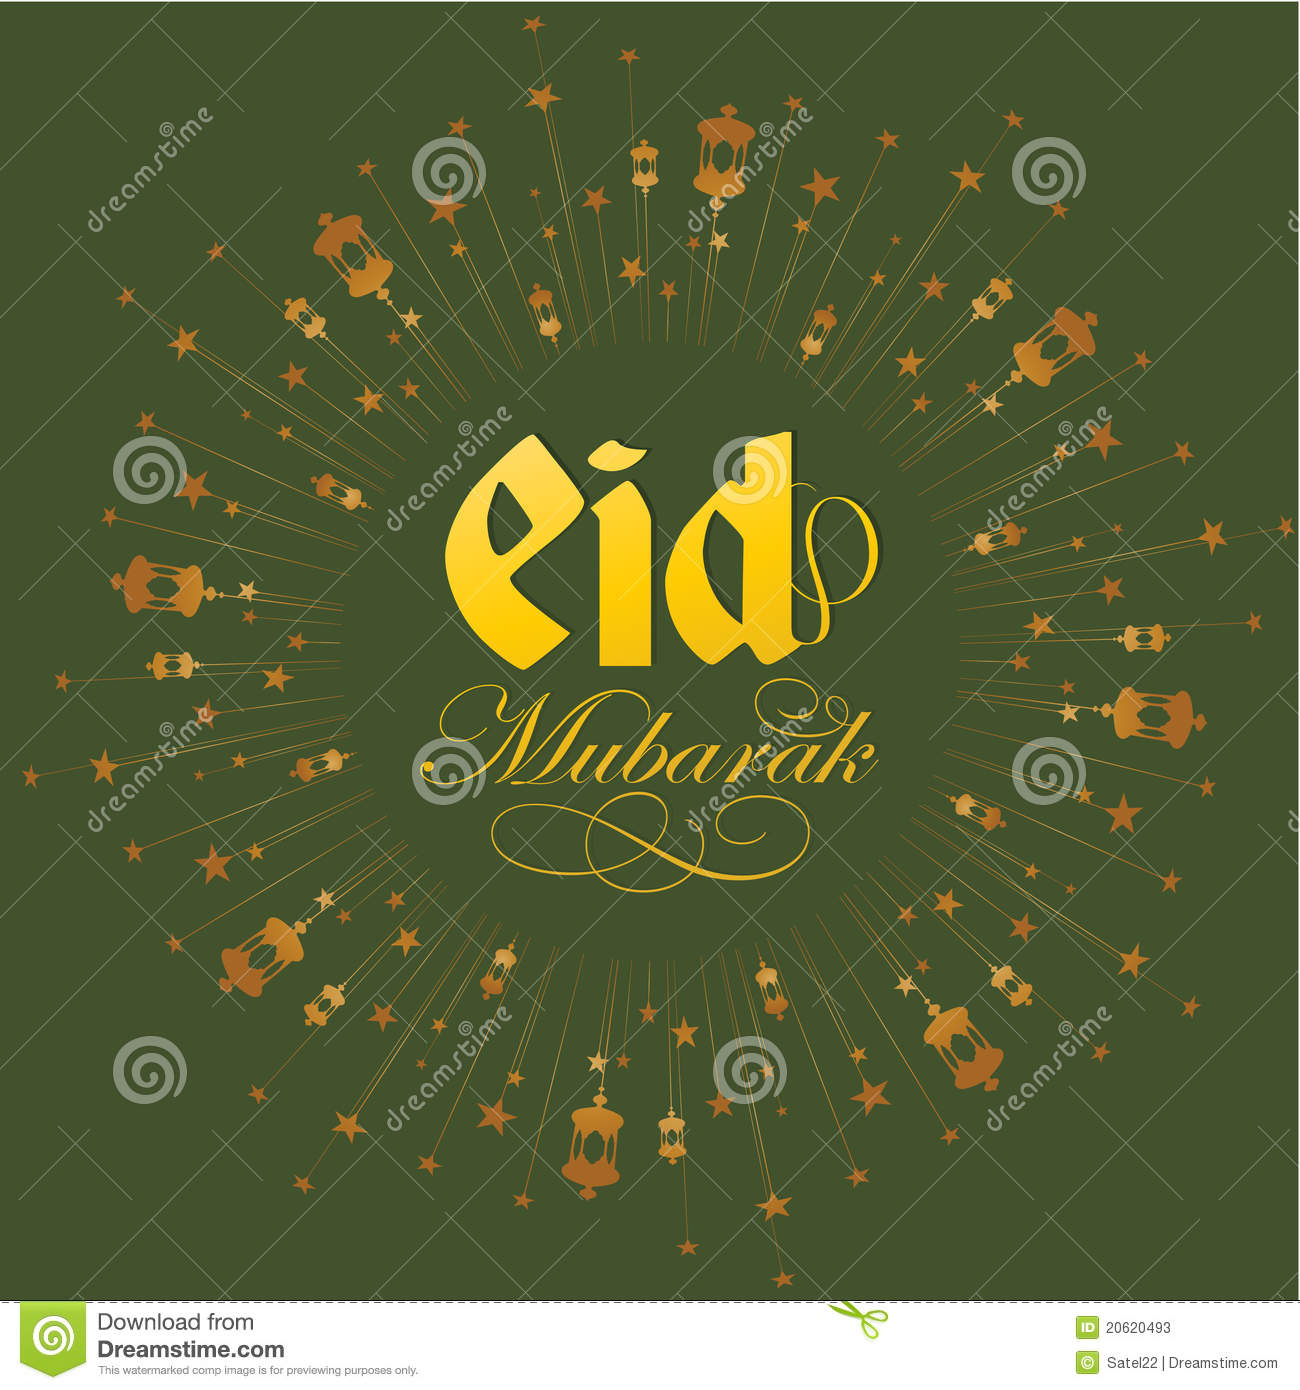 Eid Mubarak Template Photos Image 20620493 – Eid Card Templates